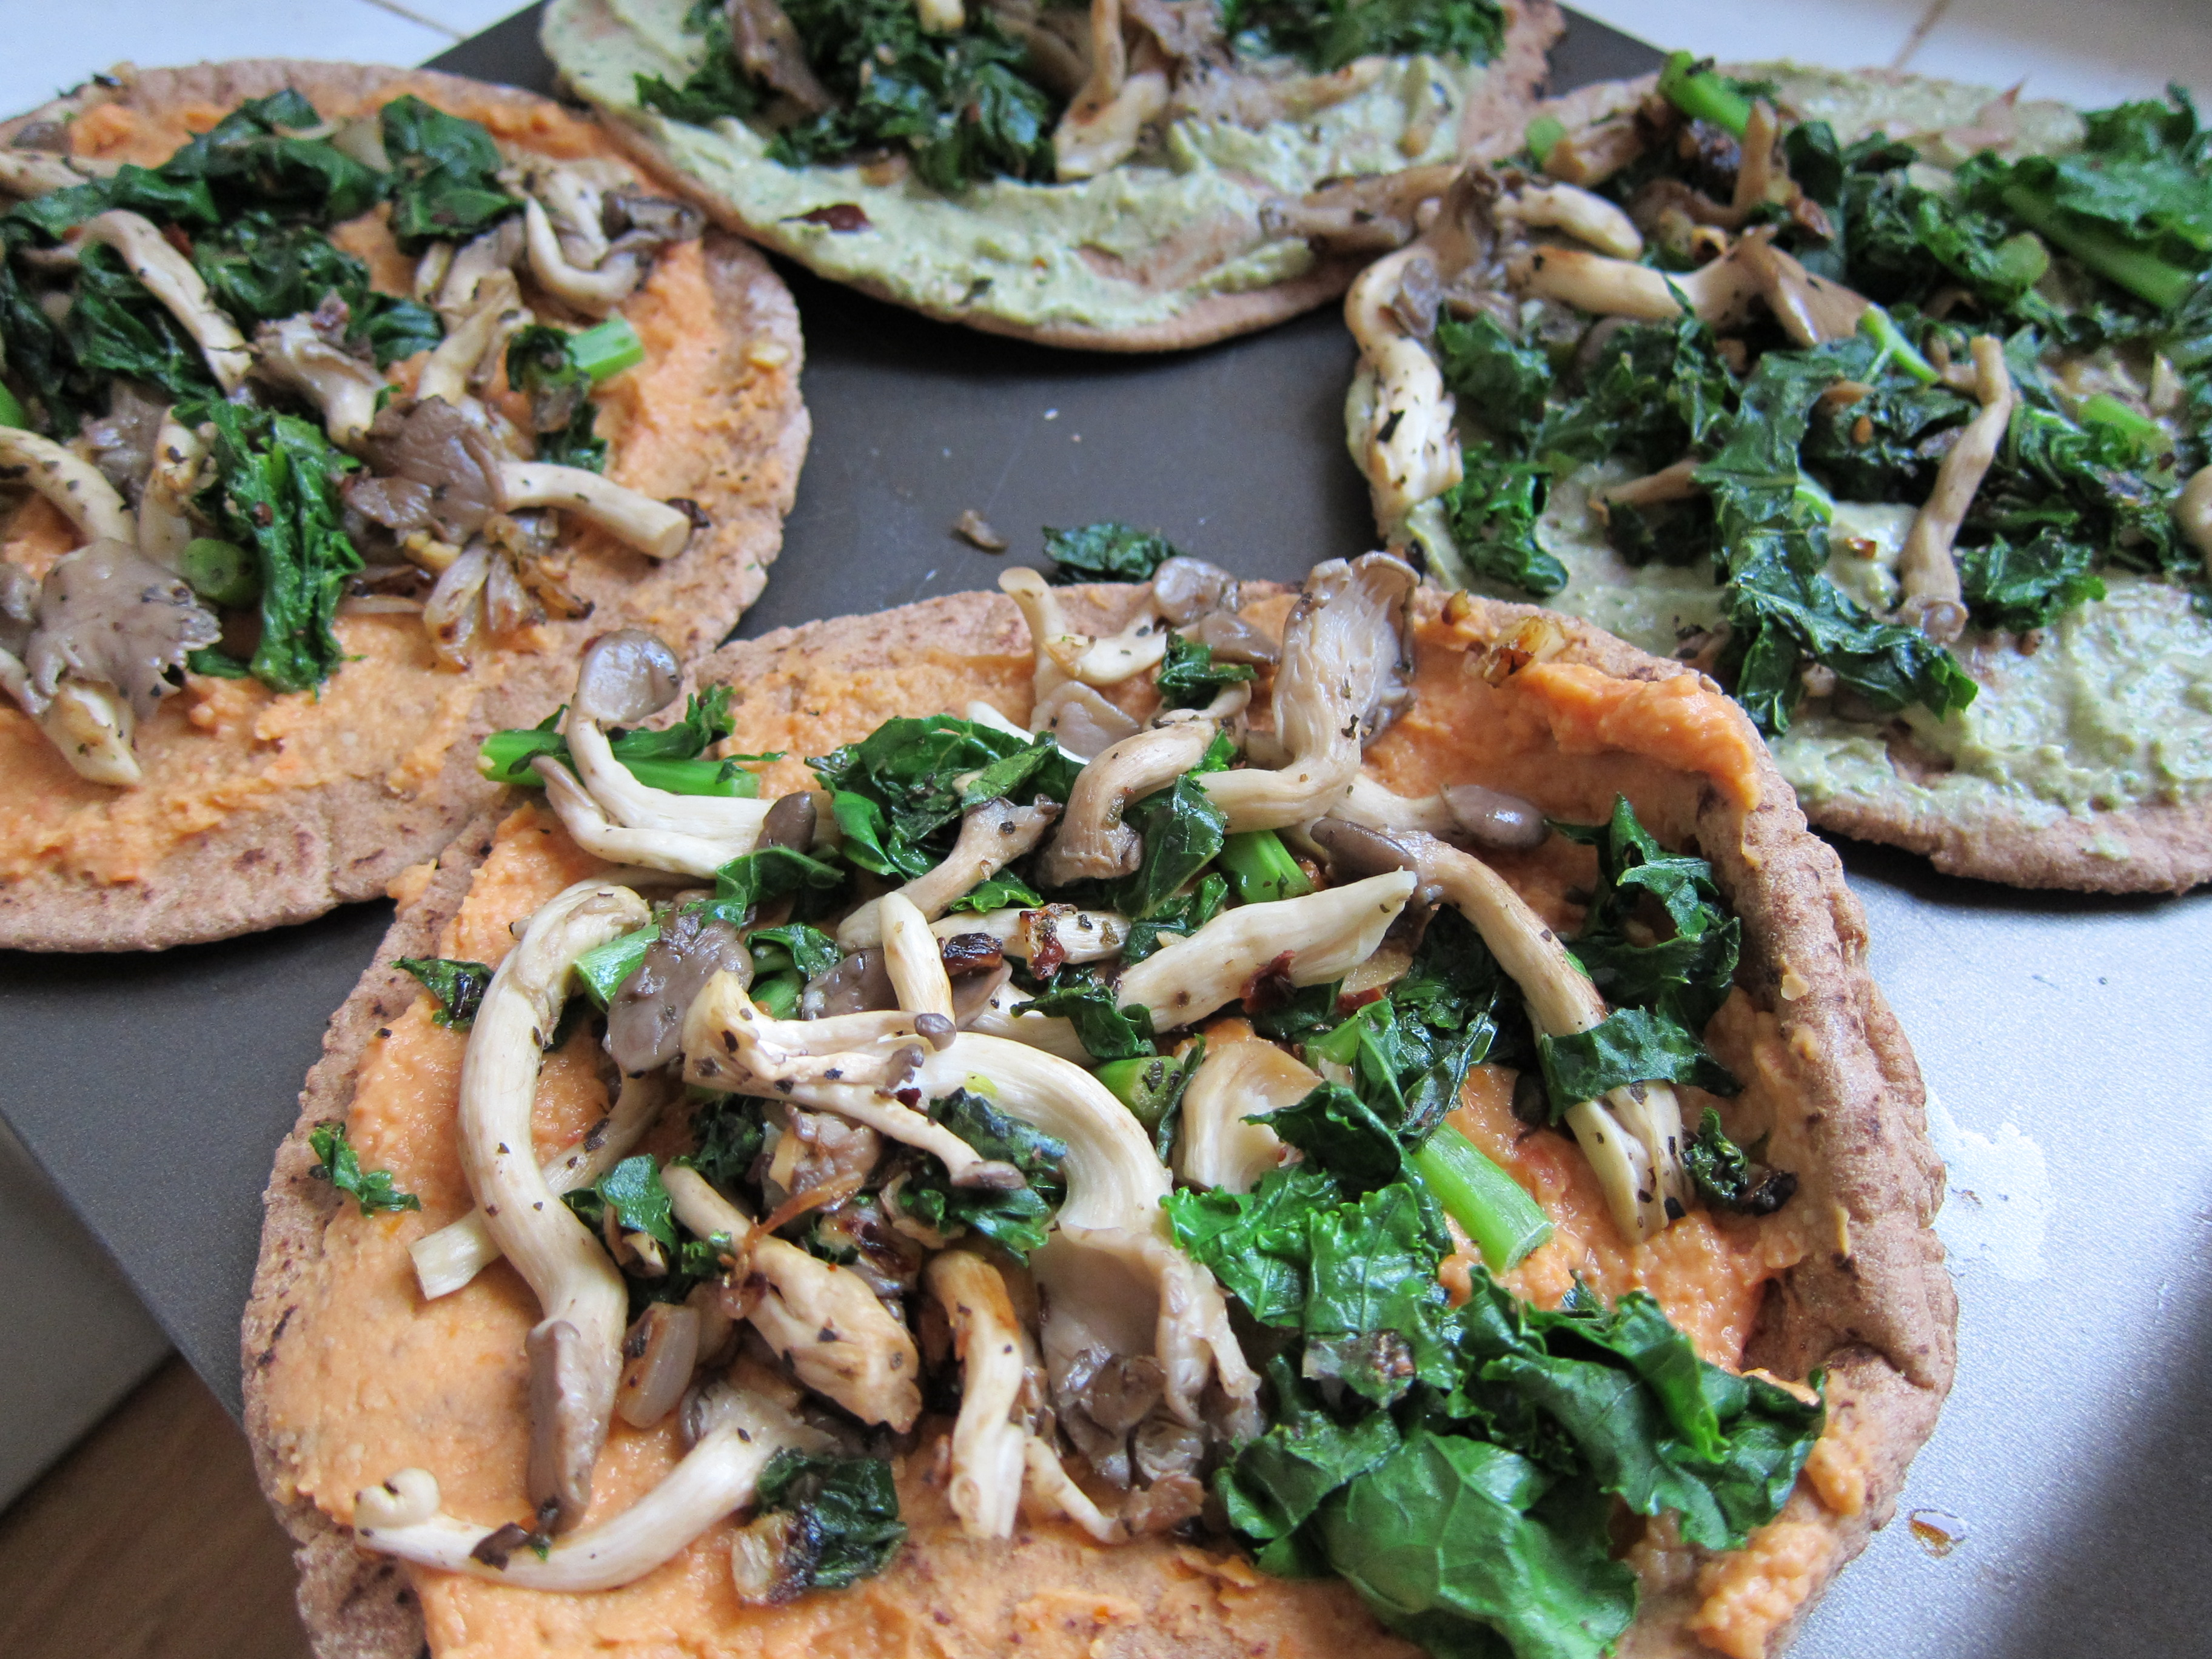 Vegan Pizzas with Kale and Sunshine